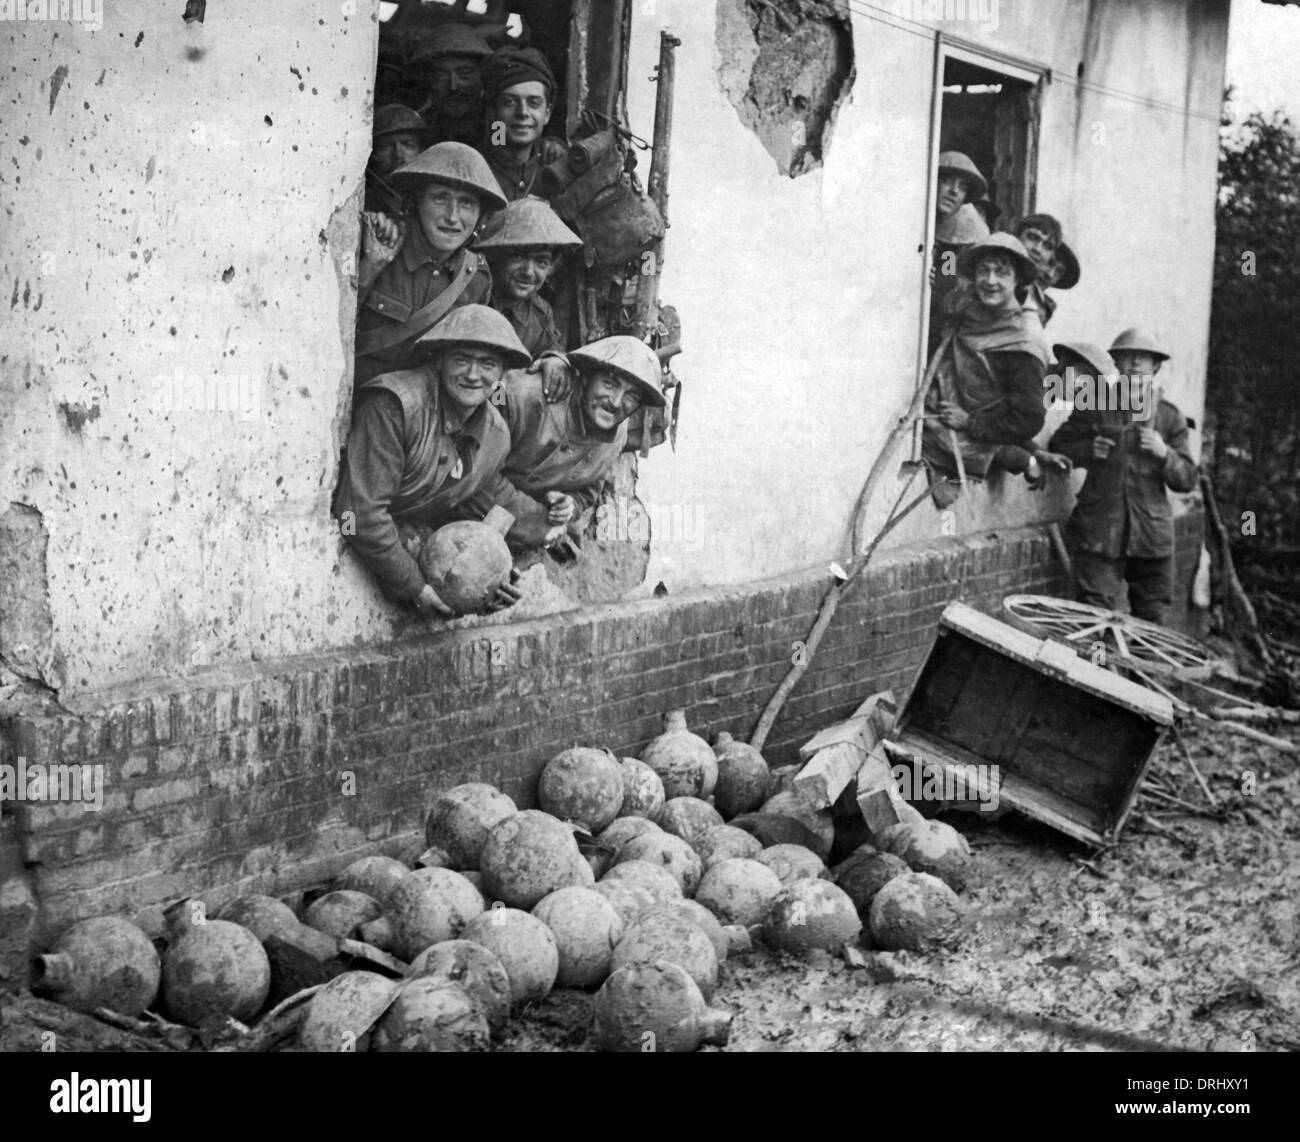 British soldiers in bombed building, Western Front, WW1 - Stock Image